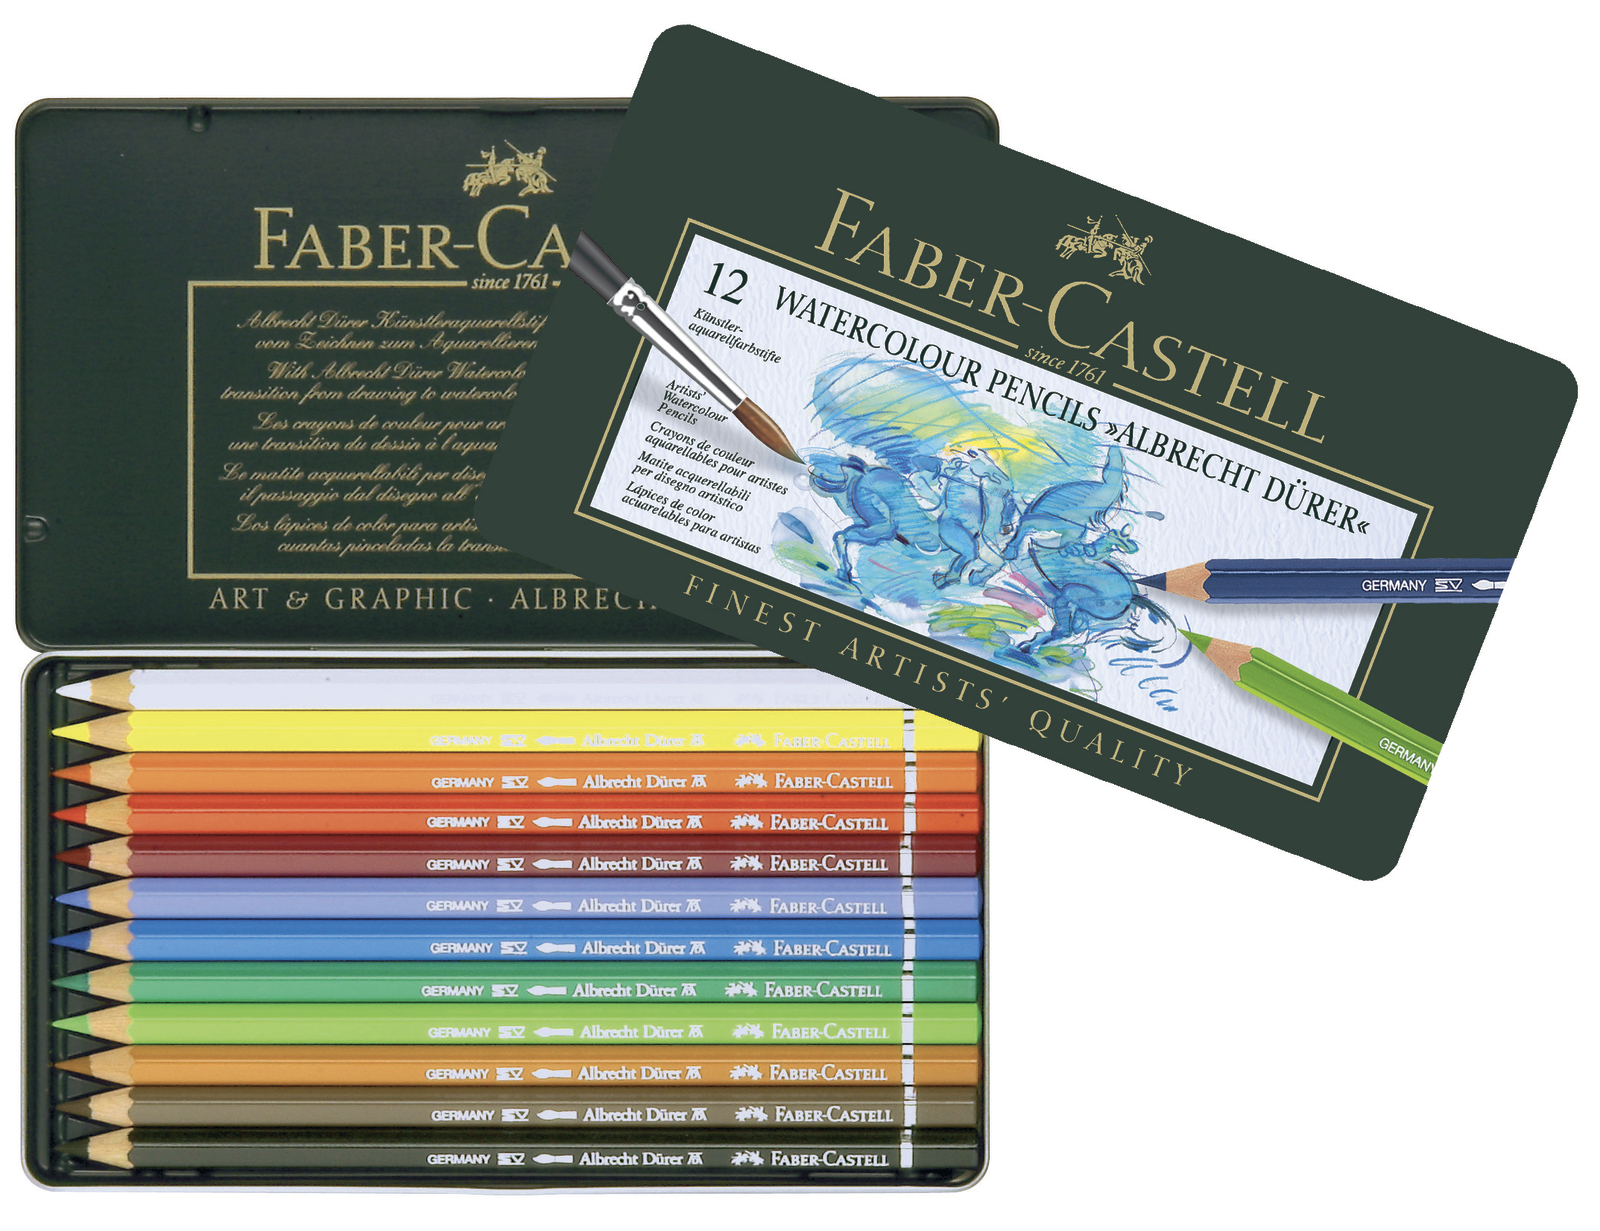 Faber-Castell: Albrecht Durer Pencil (Tin of 12) image